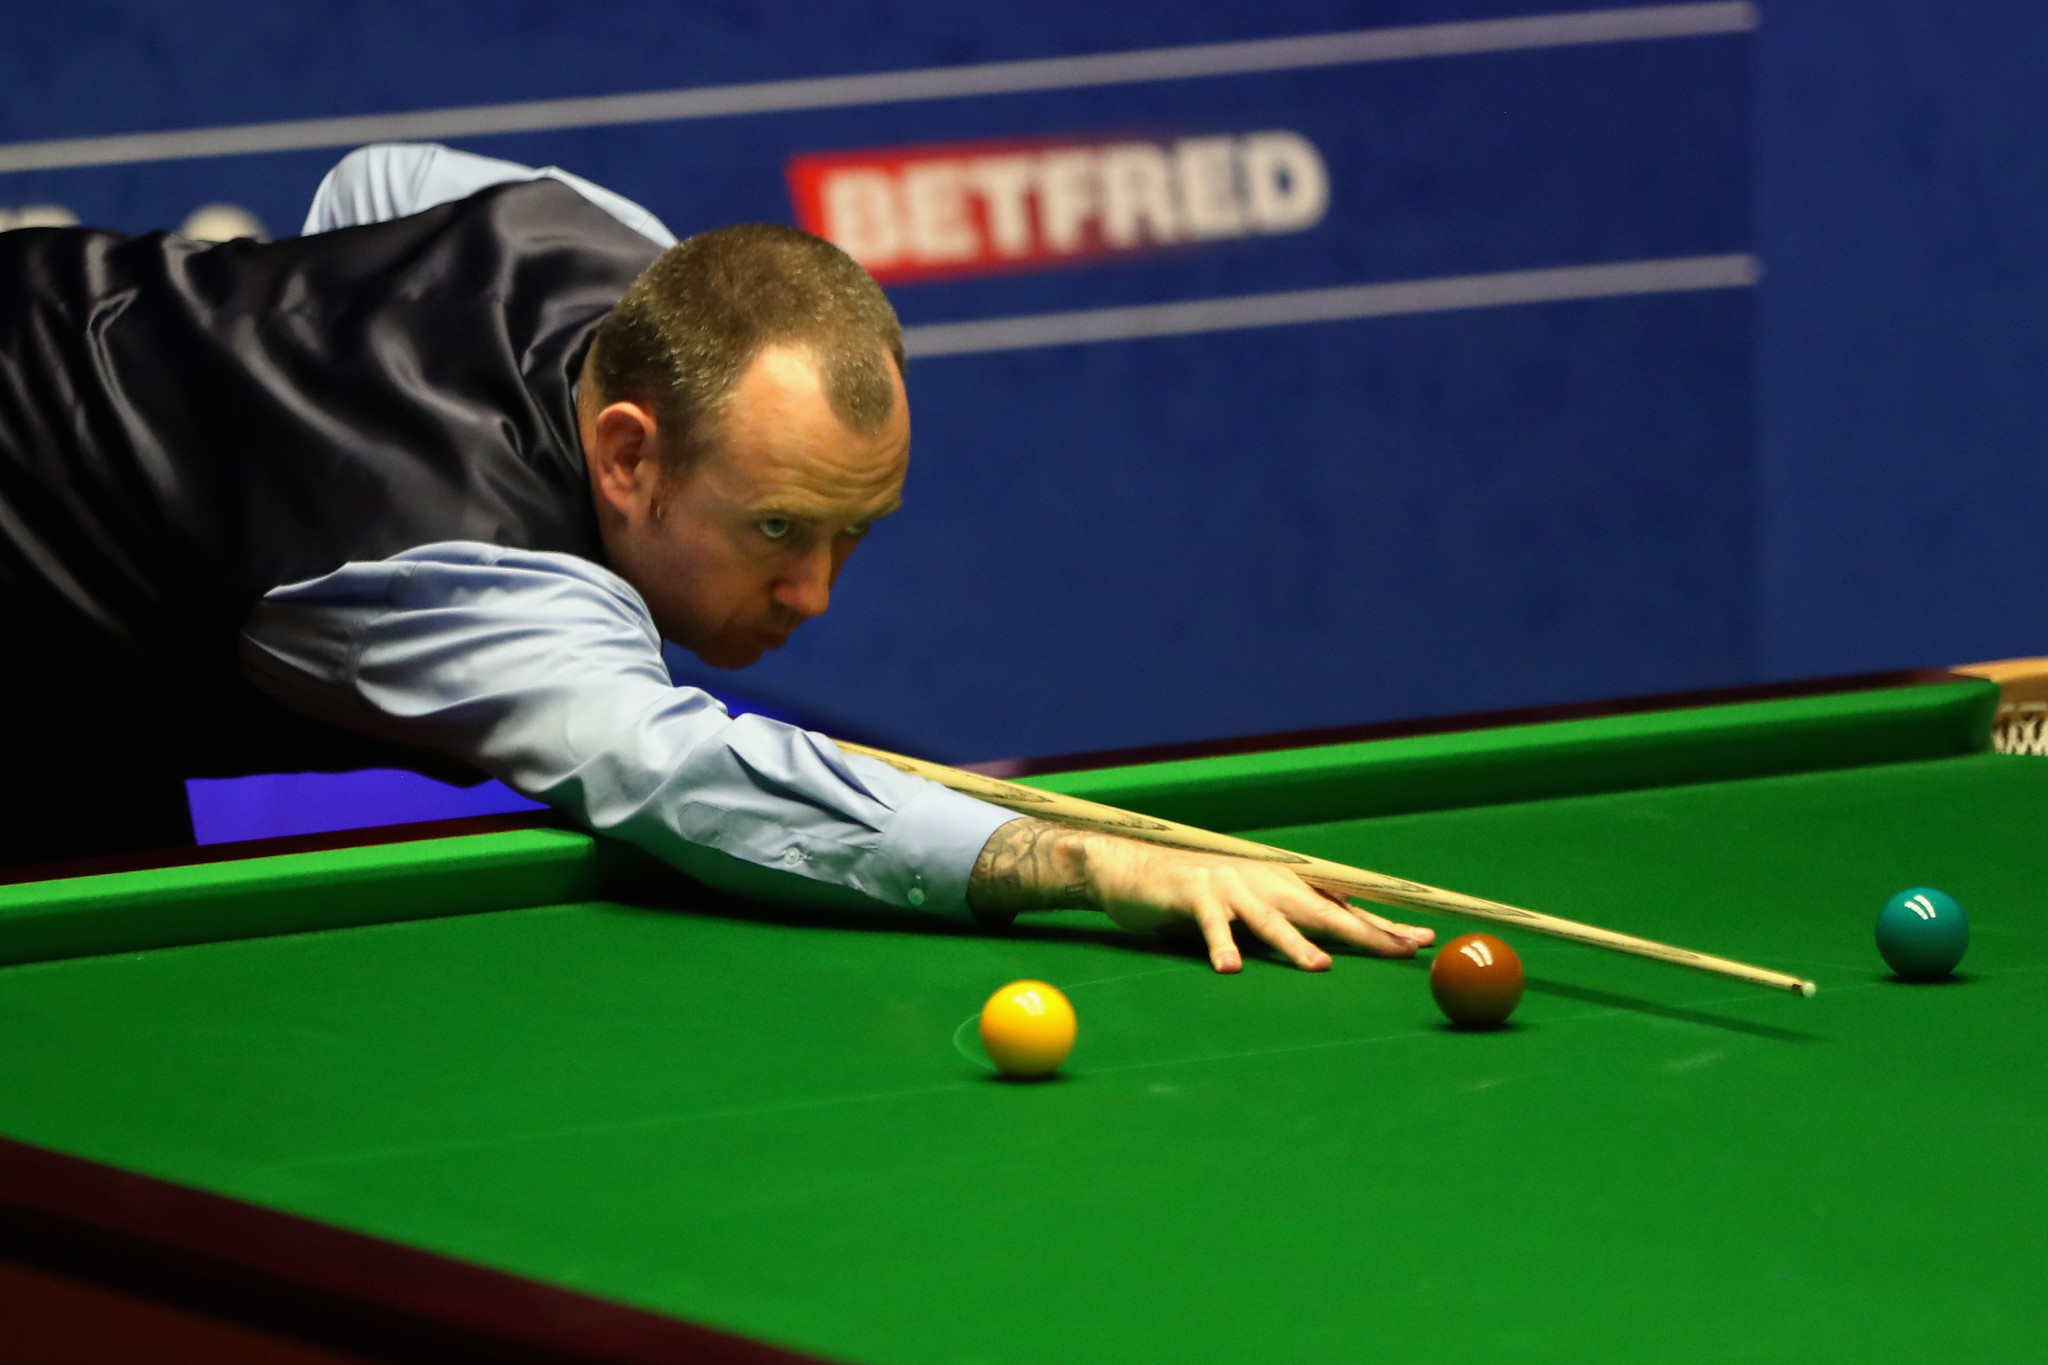 Defending champion Mark Williams won his opening match of the World Snooker Championship in Sheffield ©Getty Images